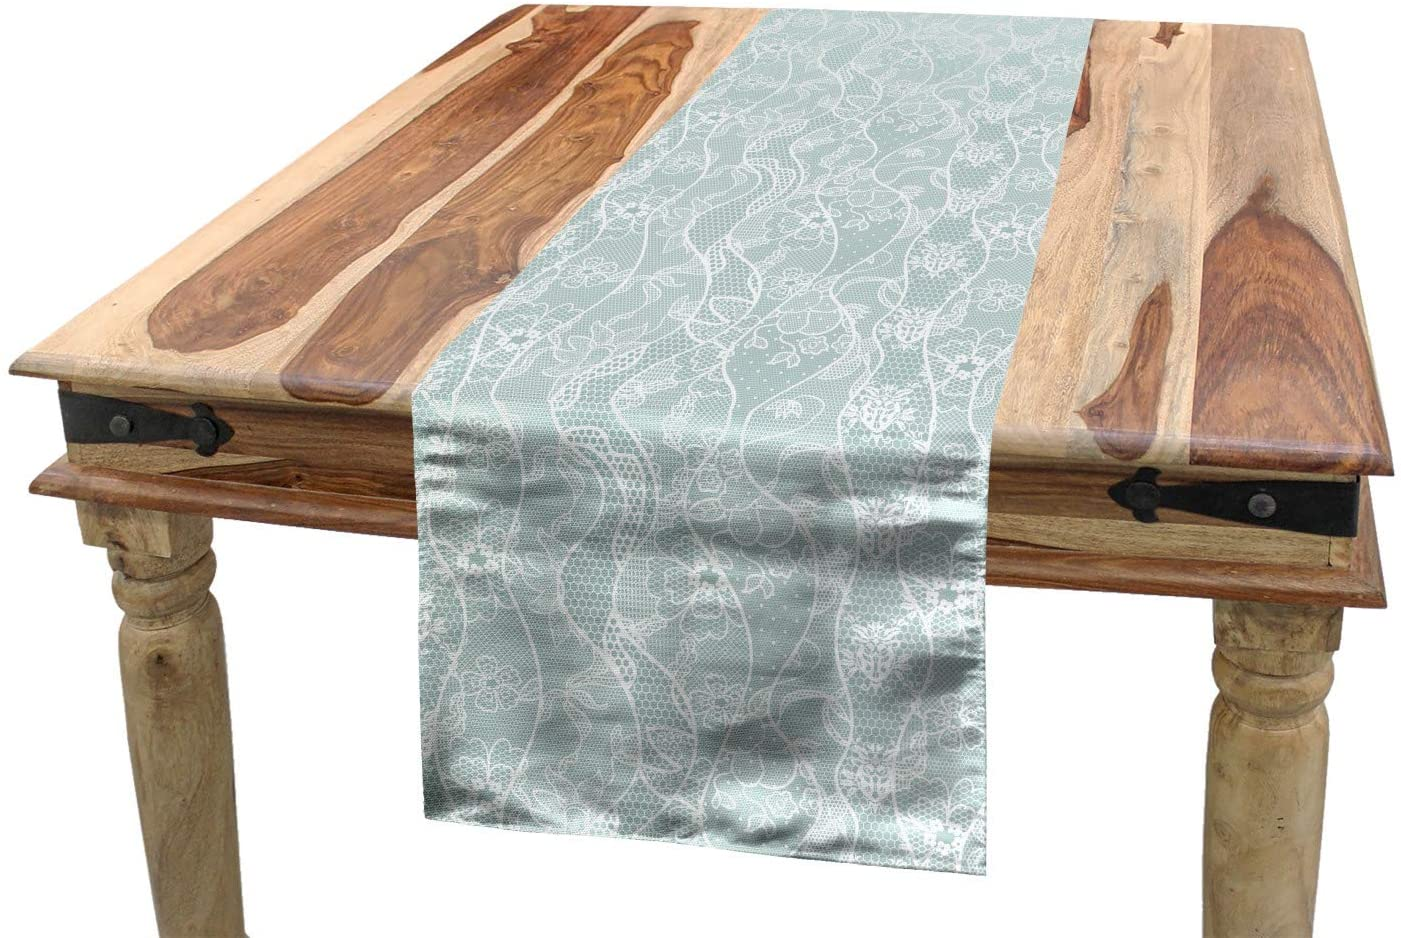 Ambesonne Vintage Table Runner, Lace Pattern Backdrop with Floral Composition Victorian Inspirations Wedding, Dining Room Kitchen Rectangular Runner, 16